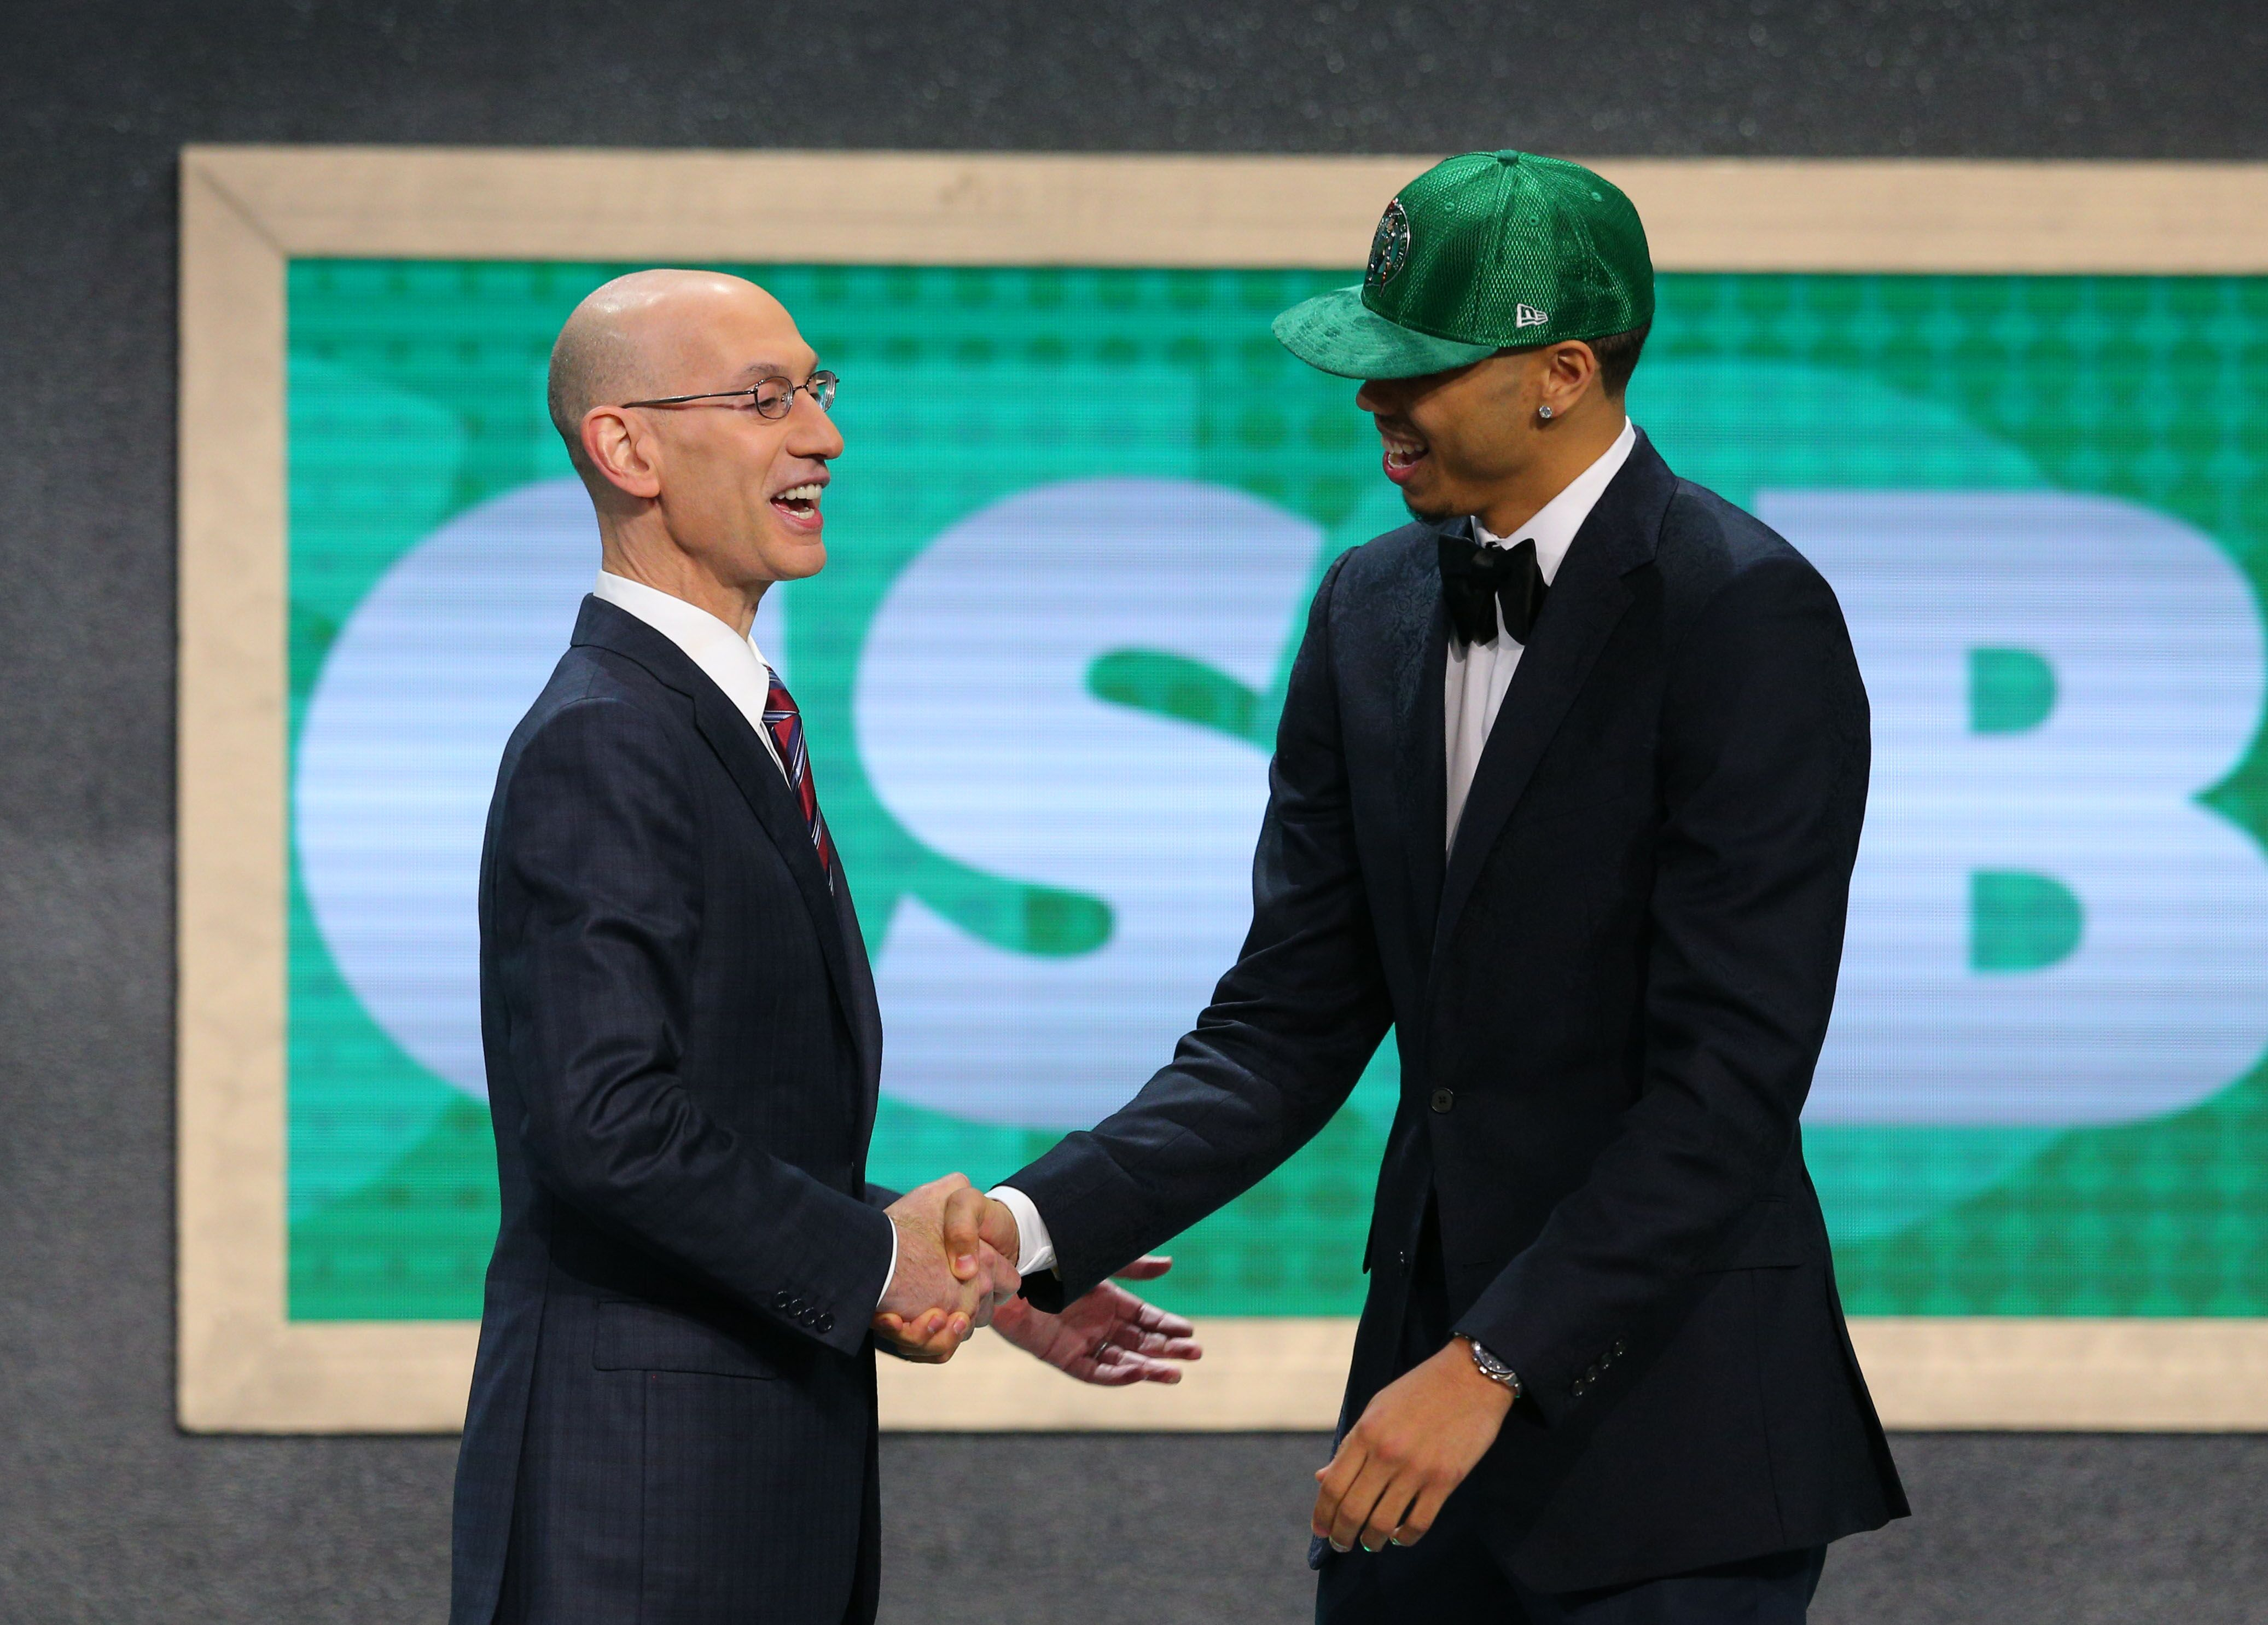 2017 nba draft evaluating the top 5 picks of the draft